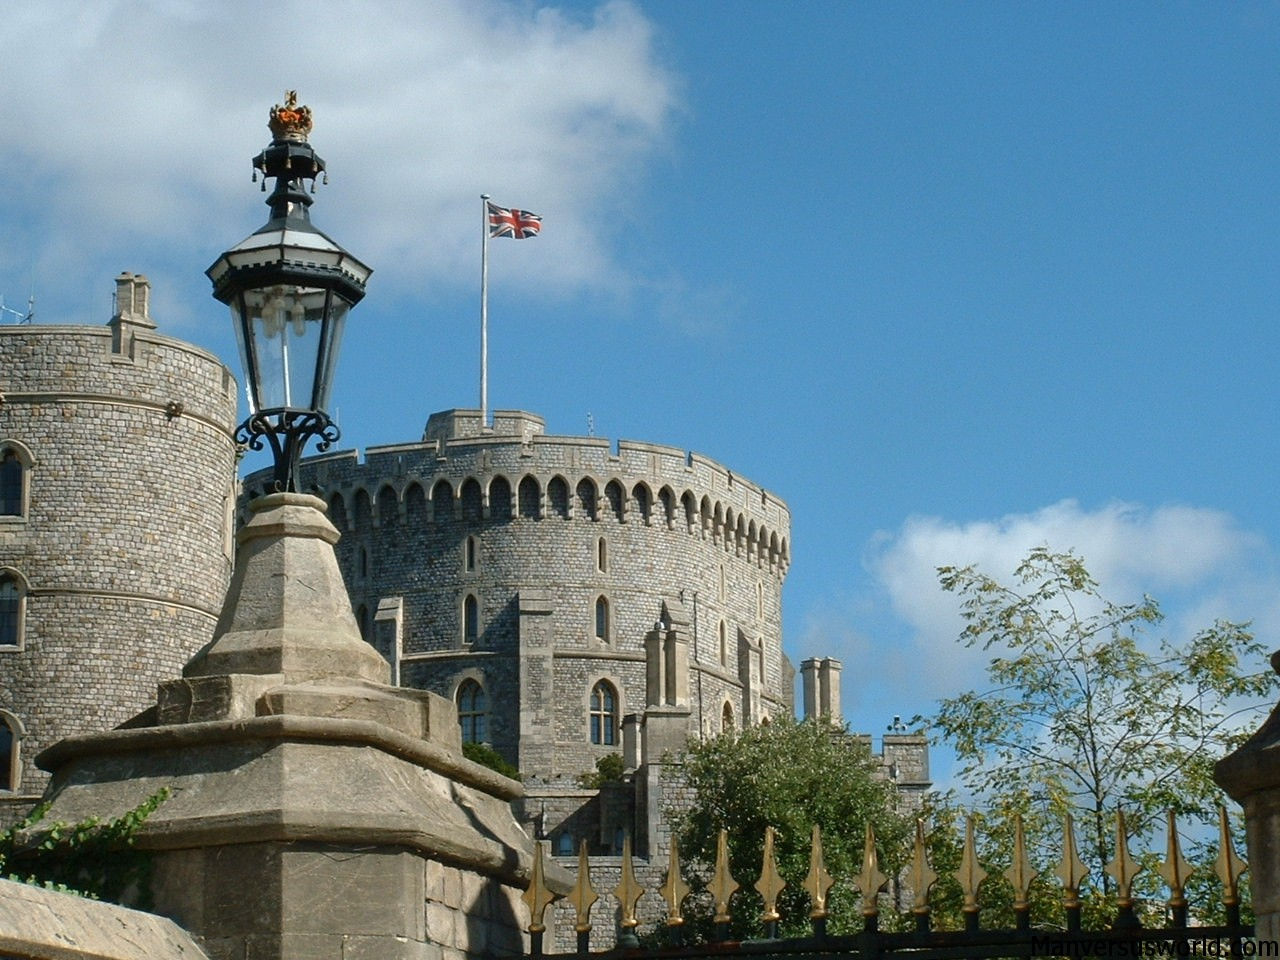 Windsor Castle - home of the Queen of England